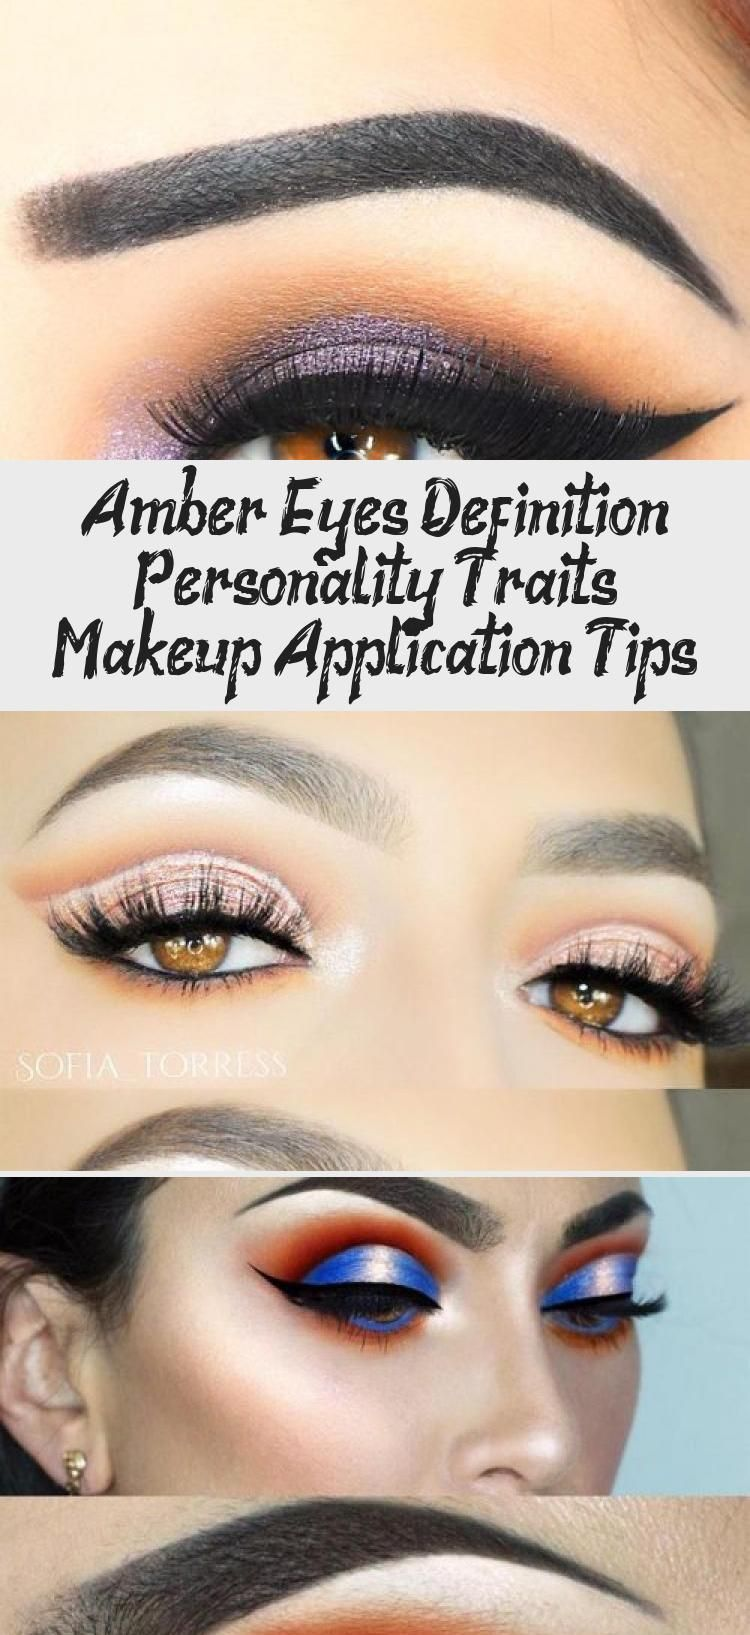 Amber Eyes Definition Personality Traits Makeup Application